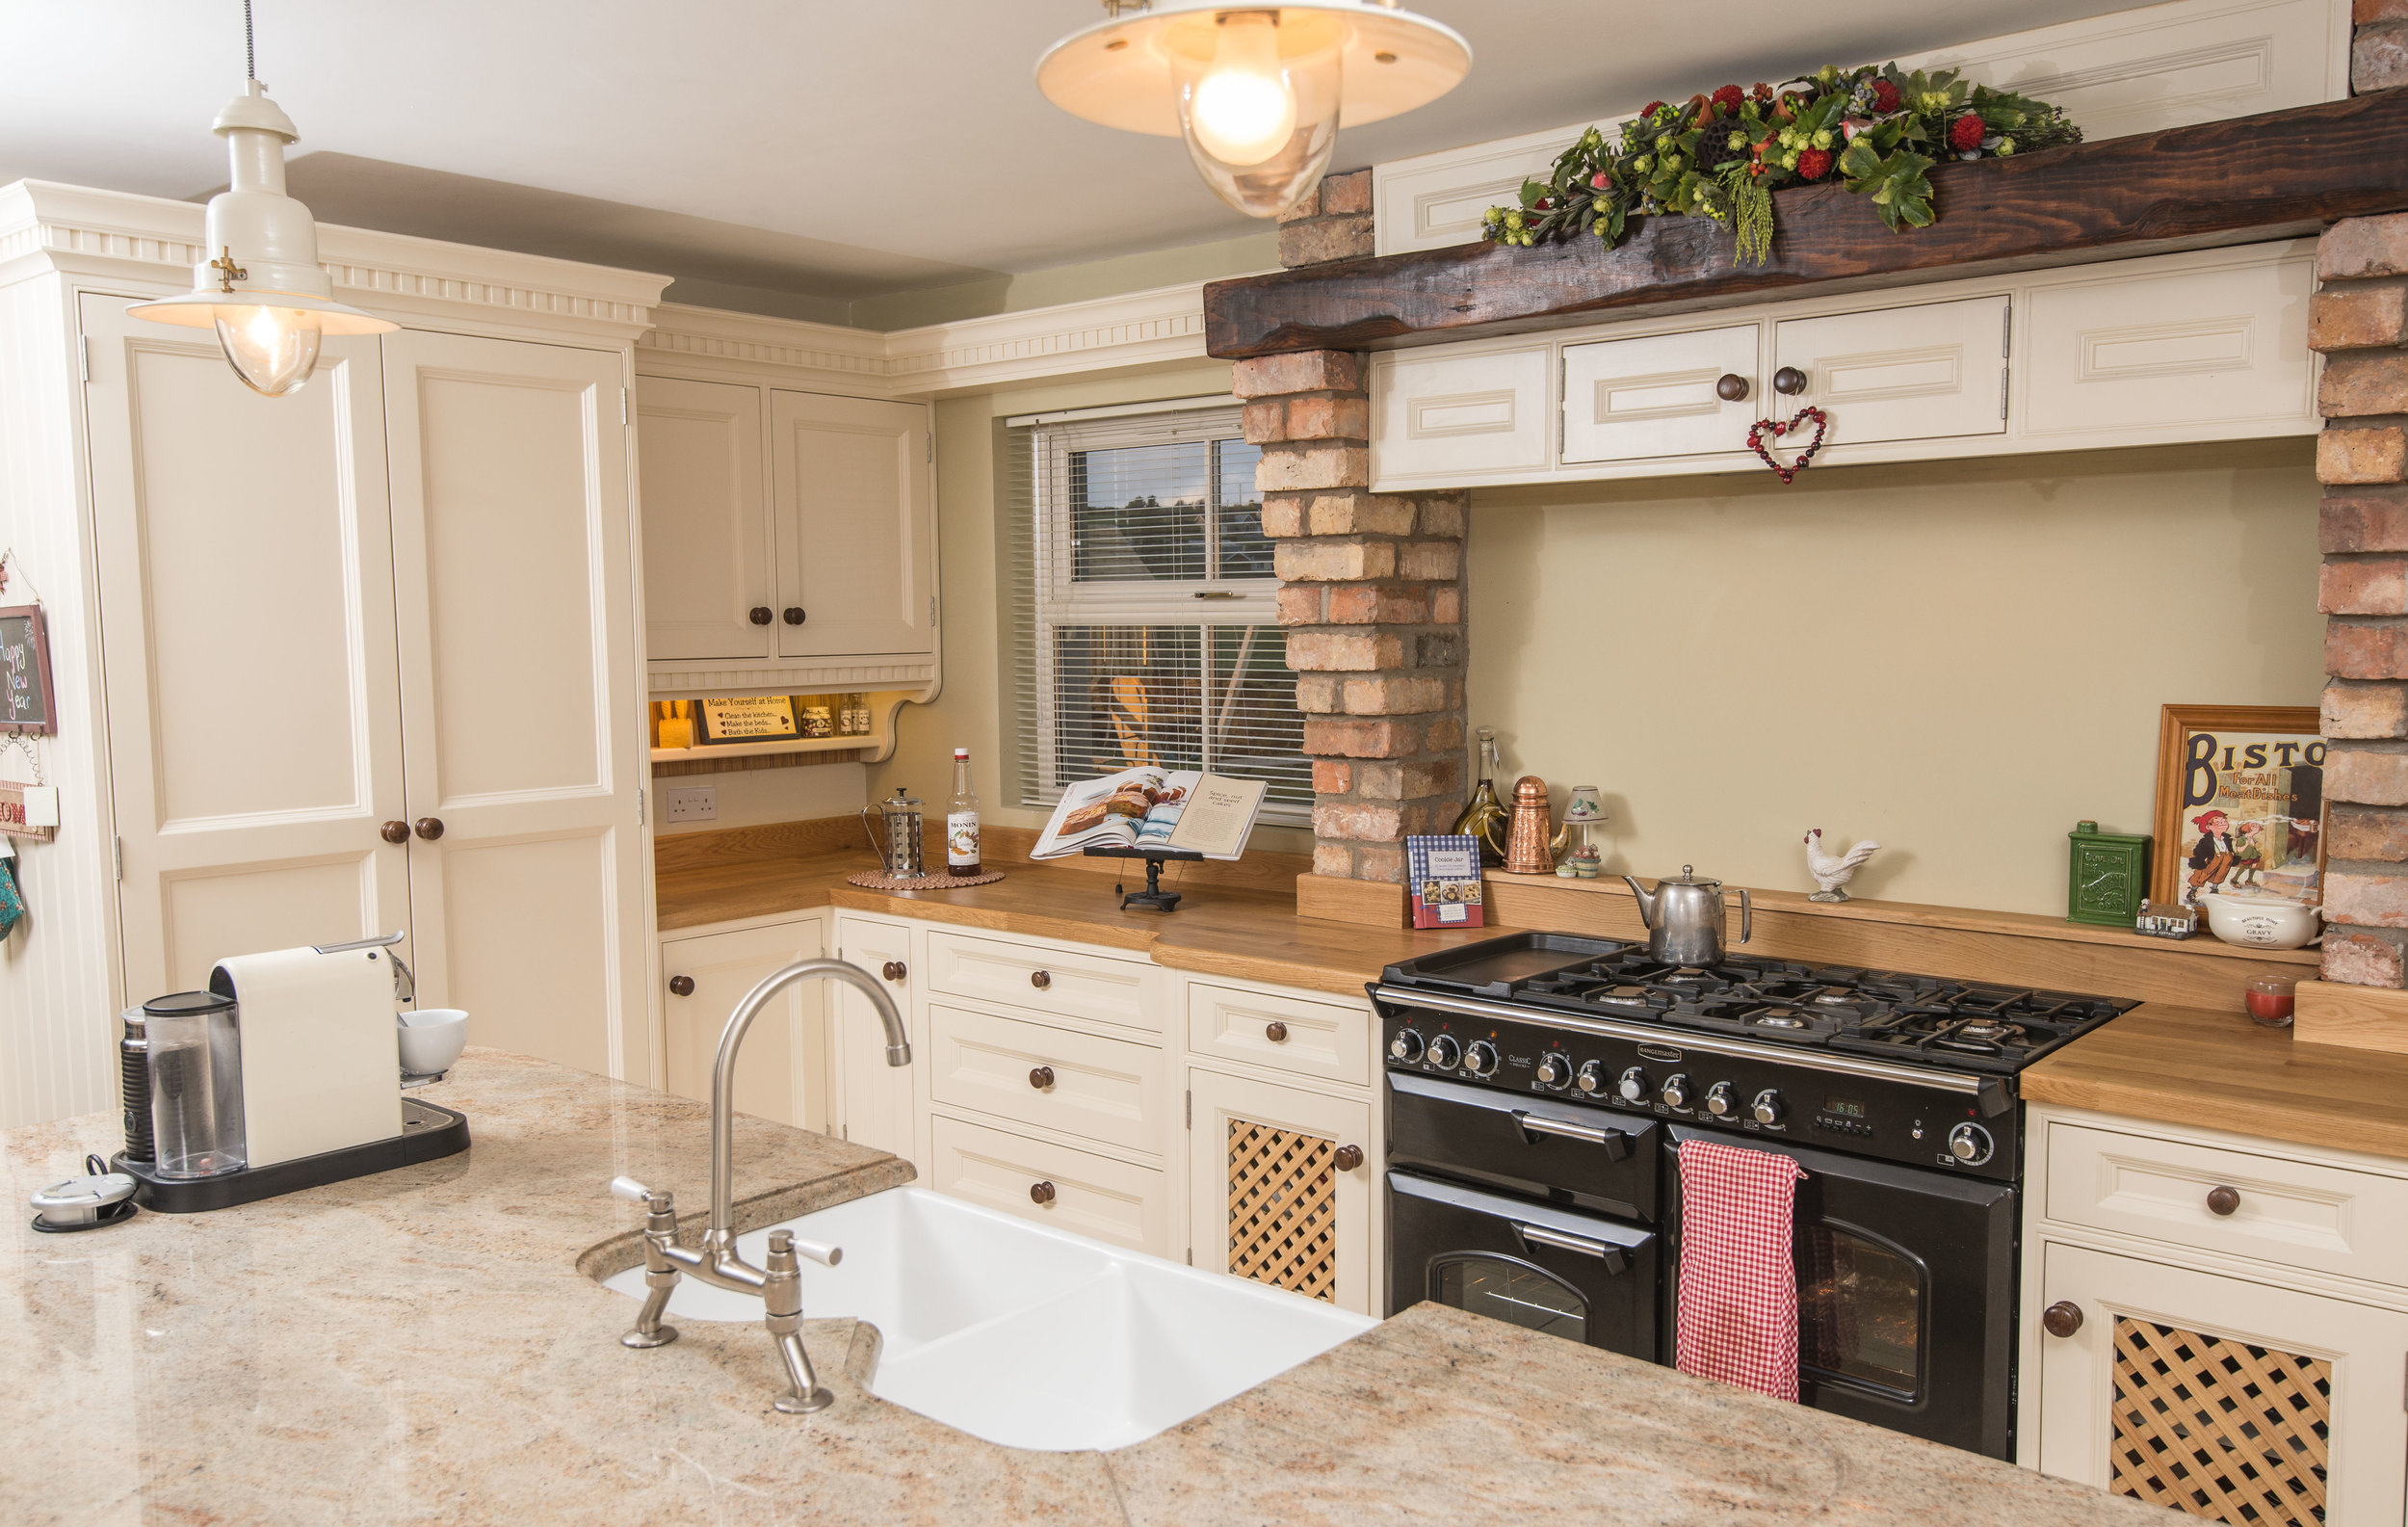 ELM -005 -Hand painted kitchen.JPG